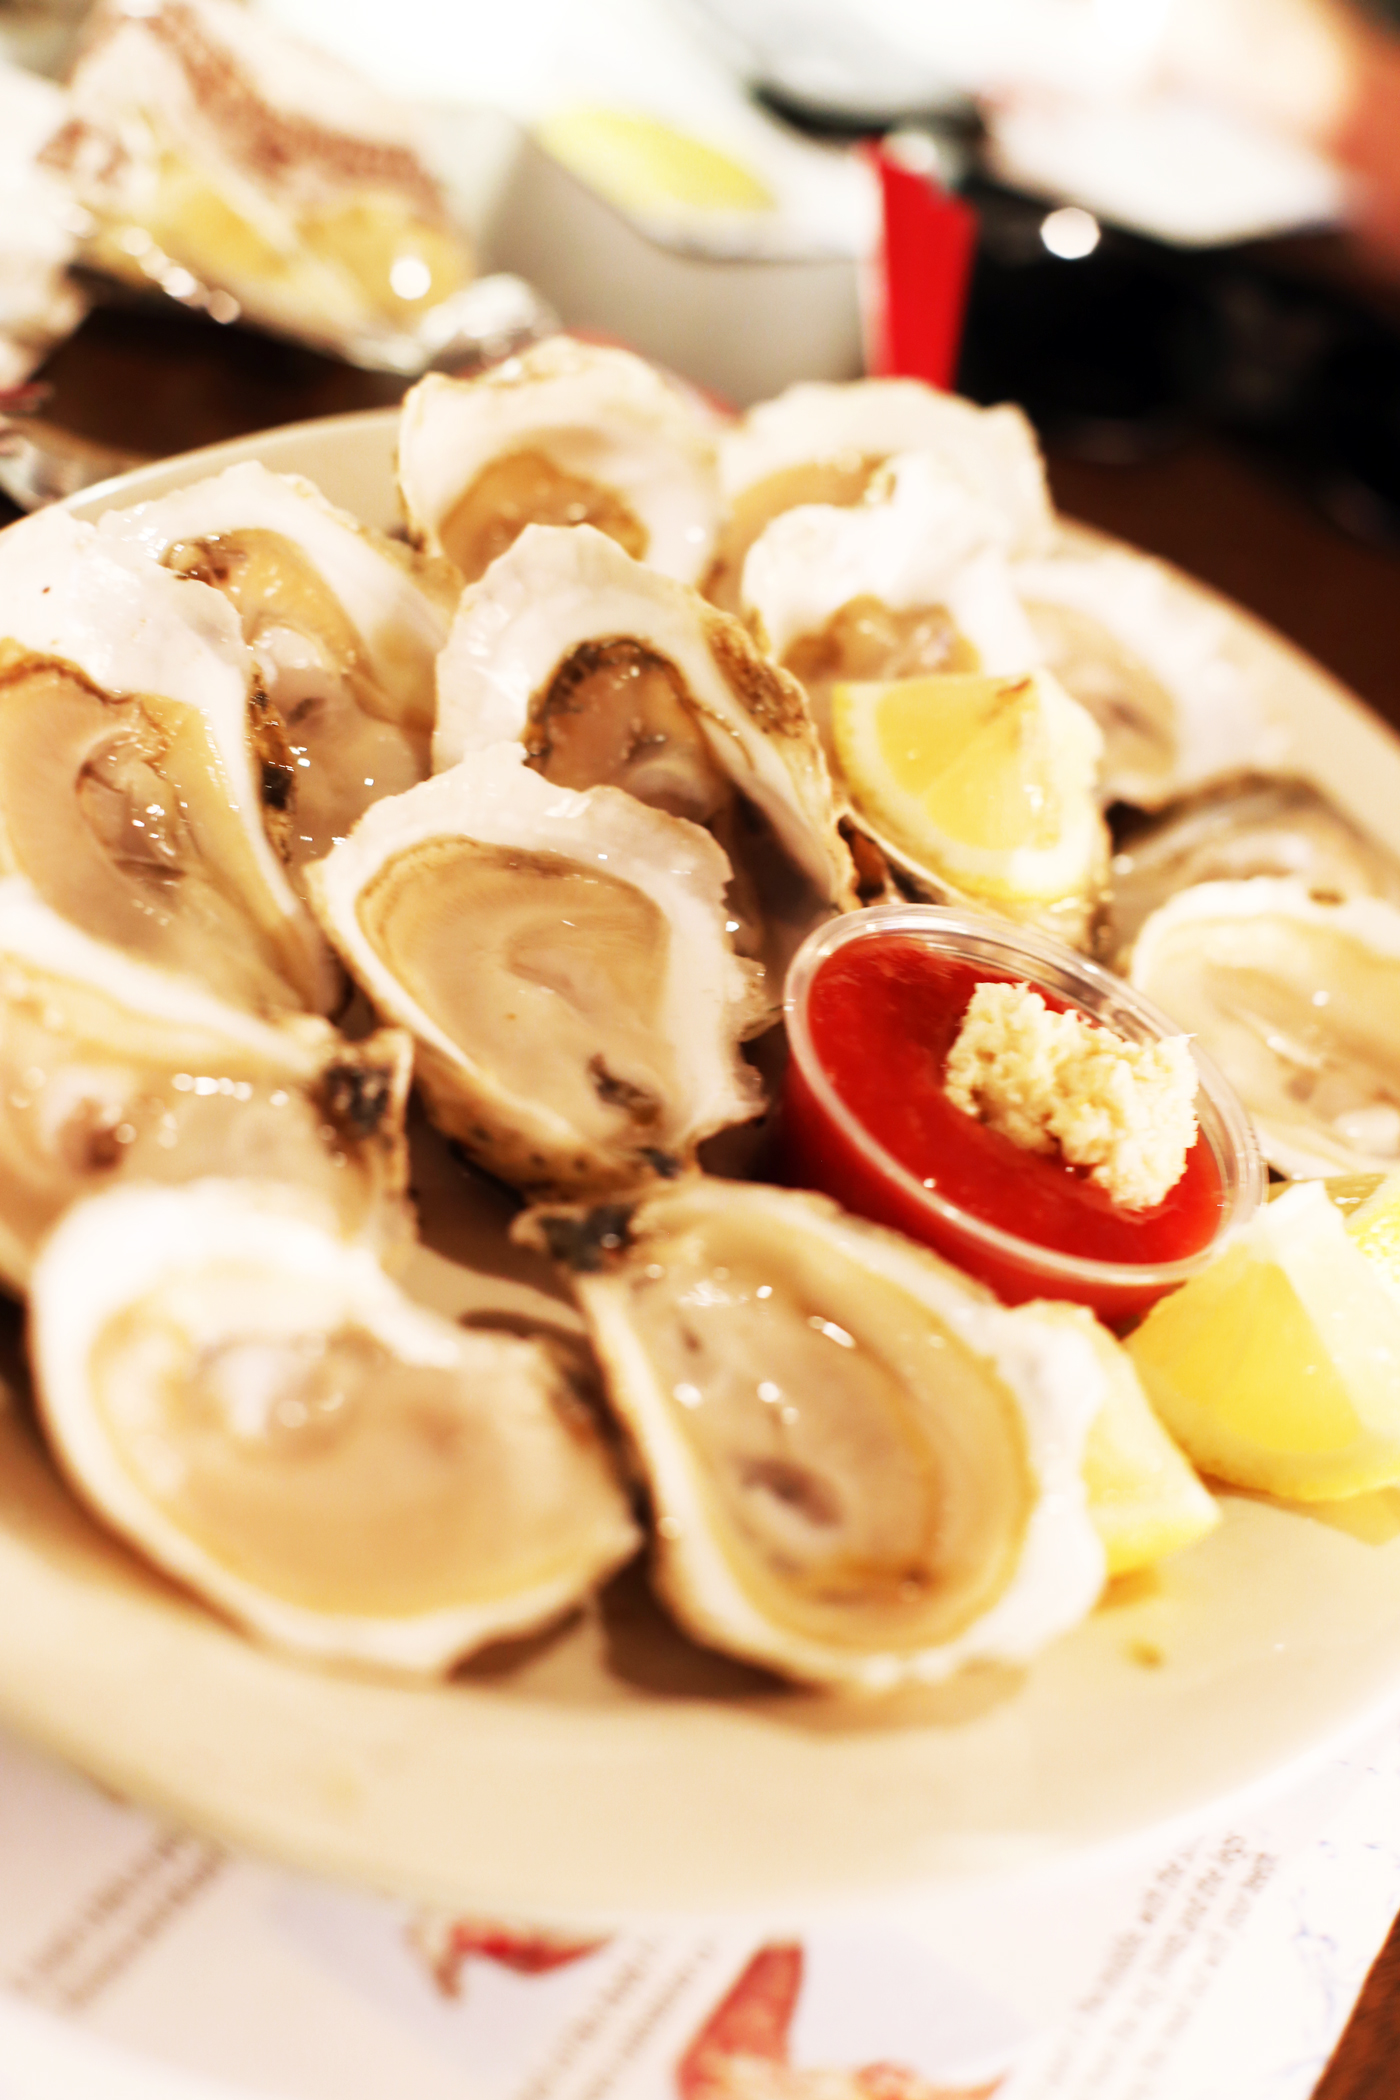 Js-Oyster-Portland-Maine-Oysters